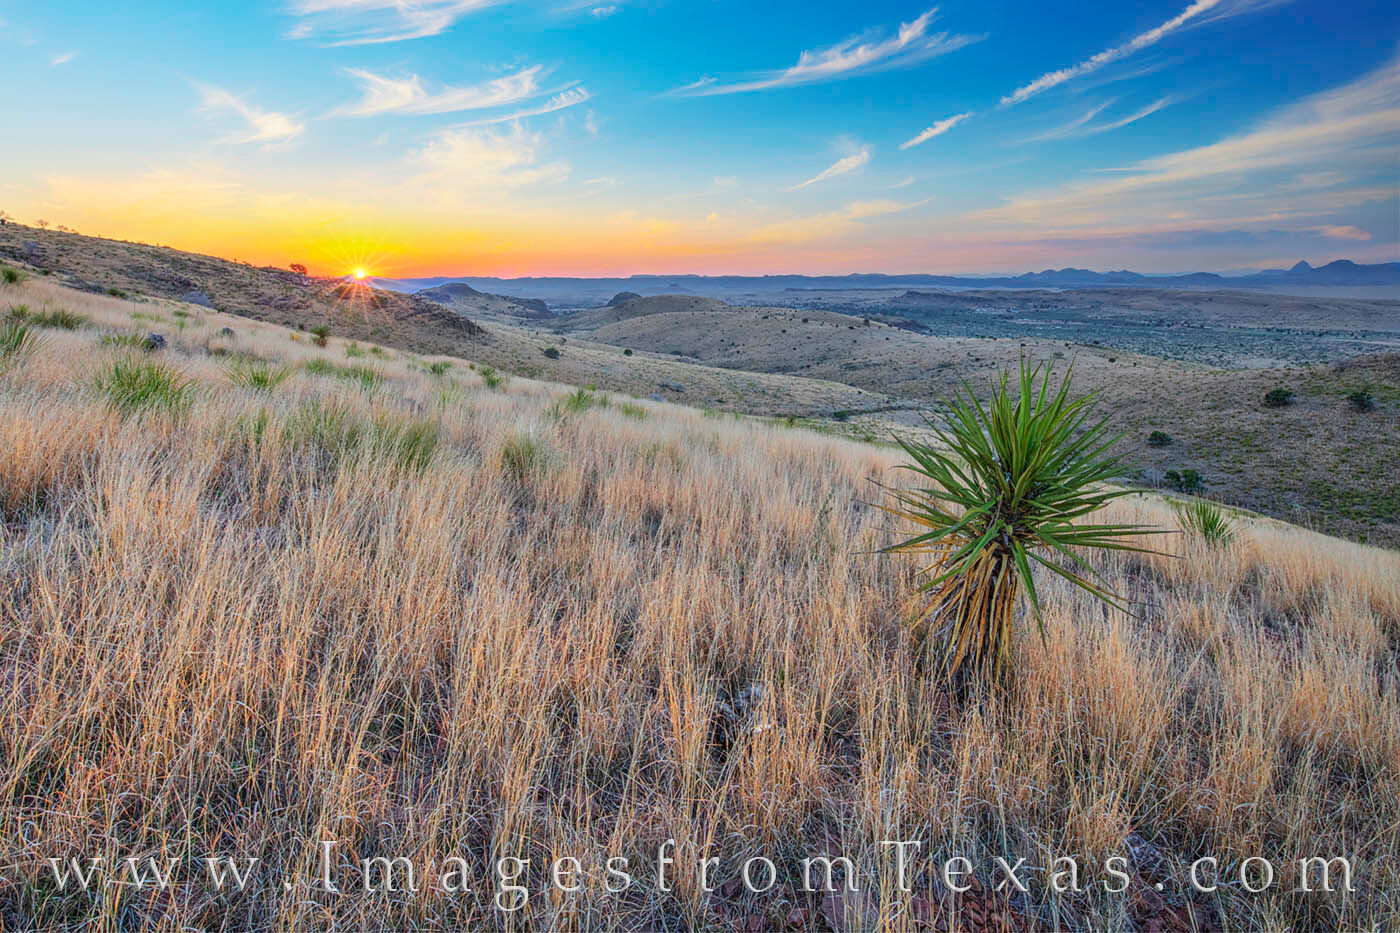 From the slopes of the Davis Mountains, the sun shows the first rays of daylight on a warm summer morning.